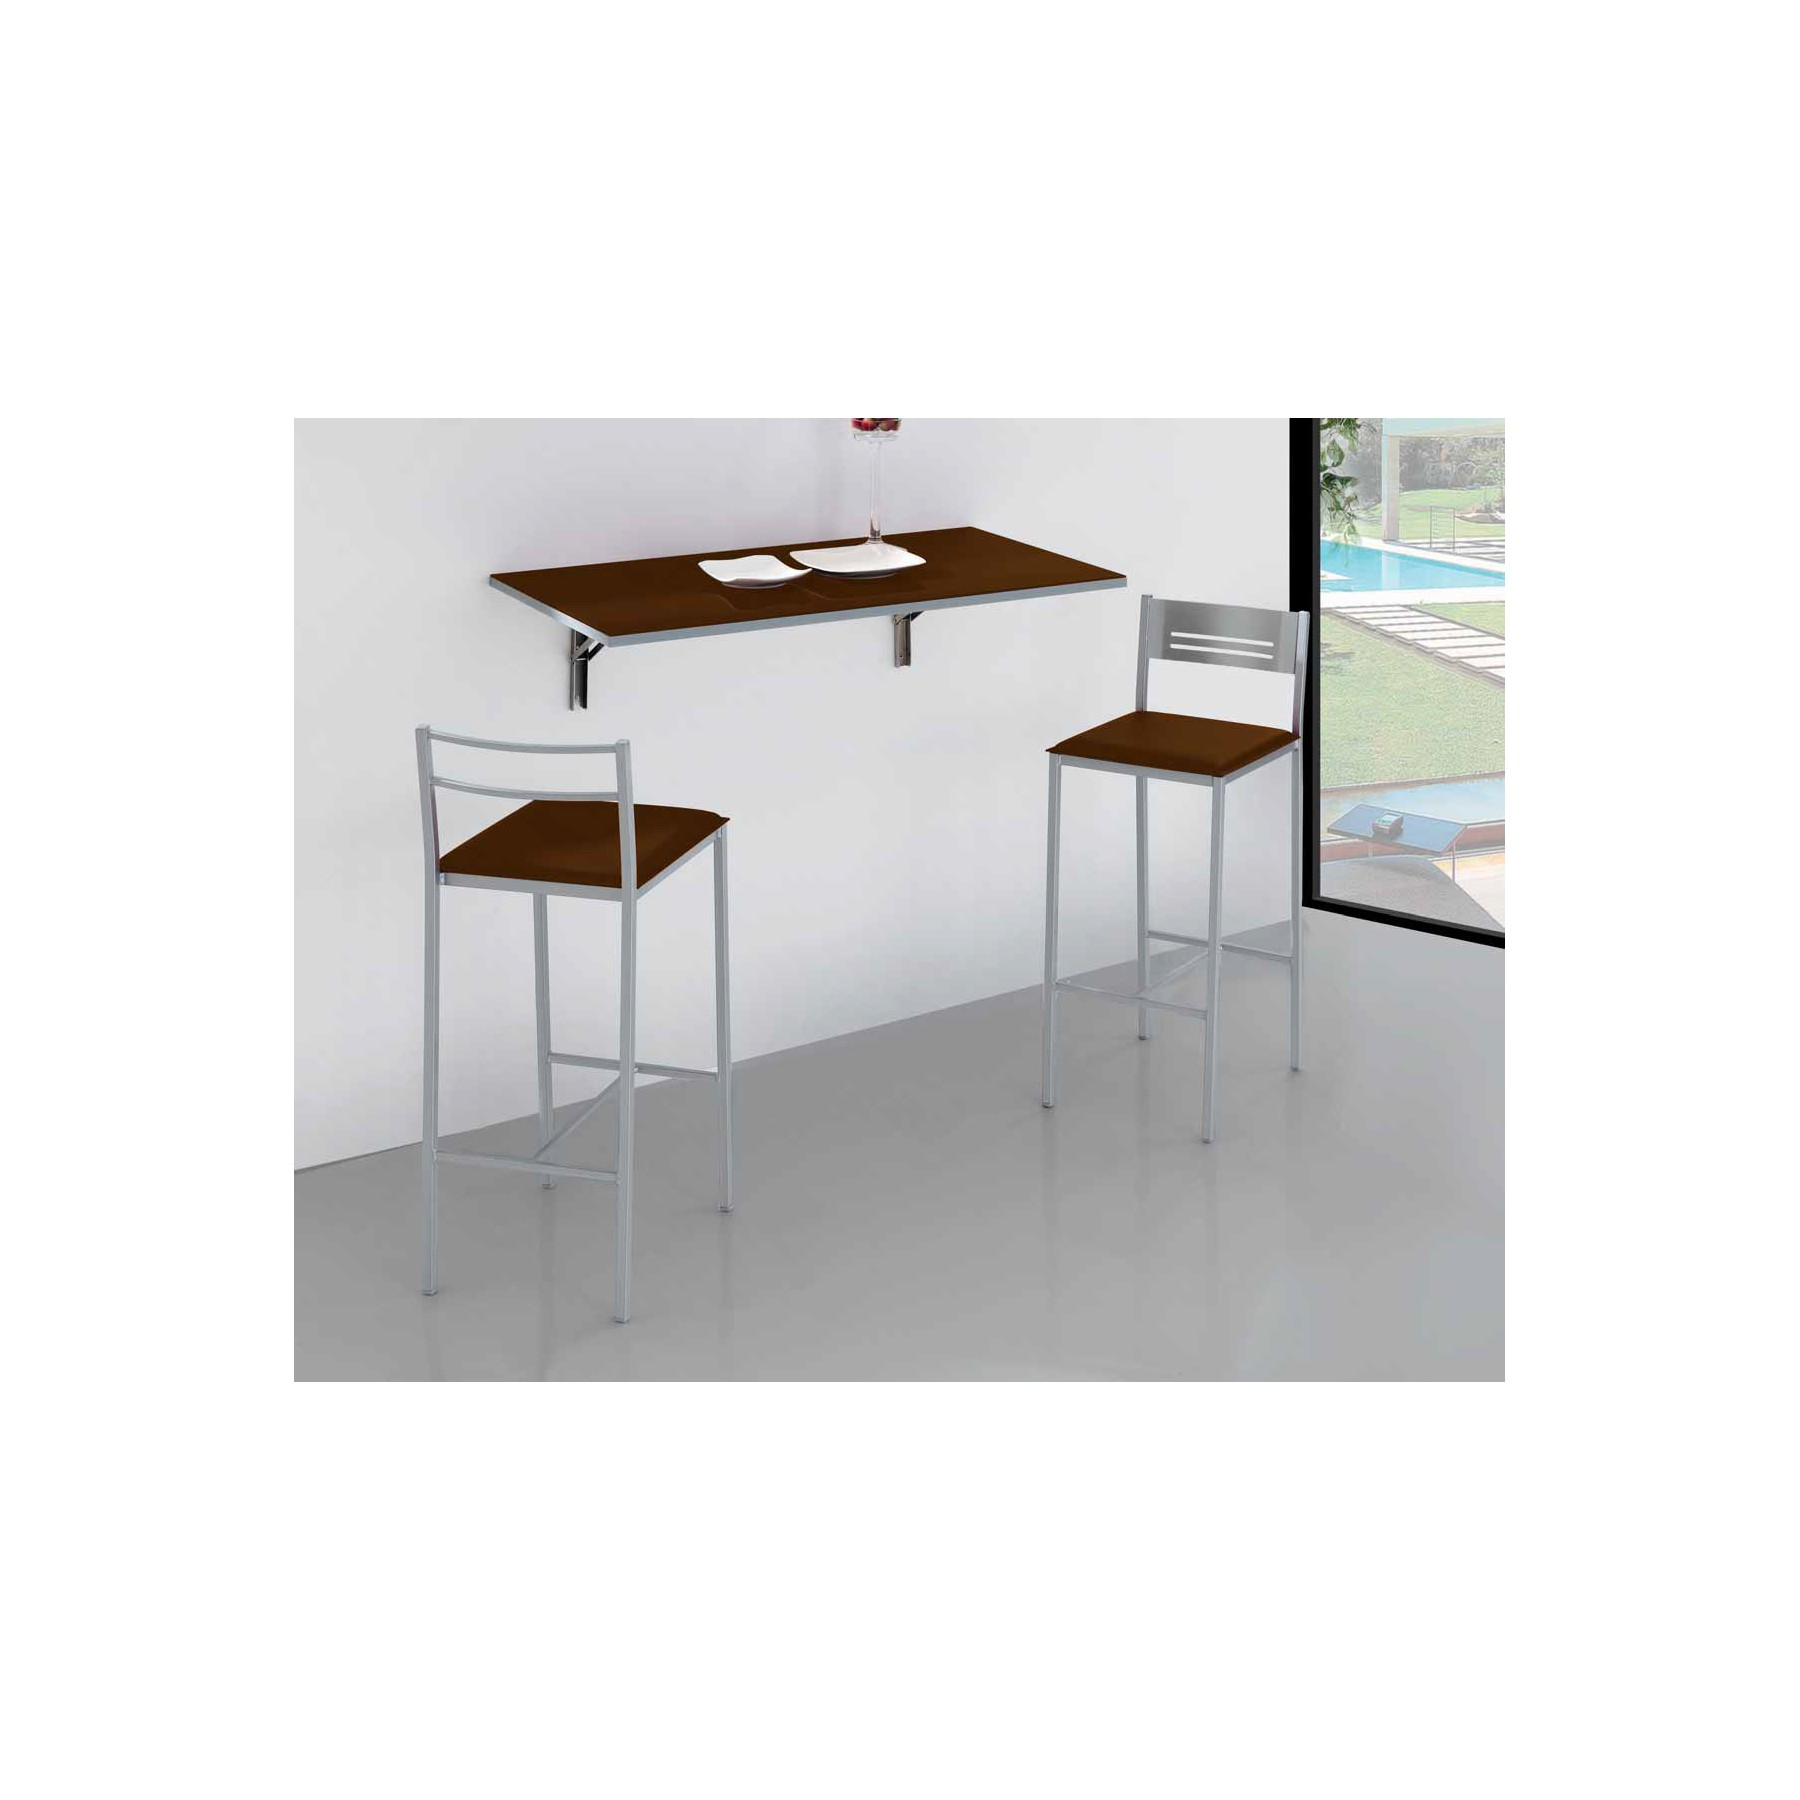 Mesas de cocina plegables de pared dise os - Mesa abatible de pared carrefour ...